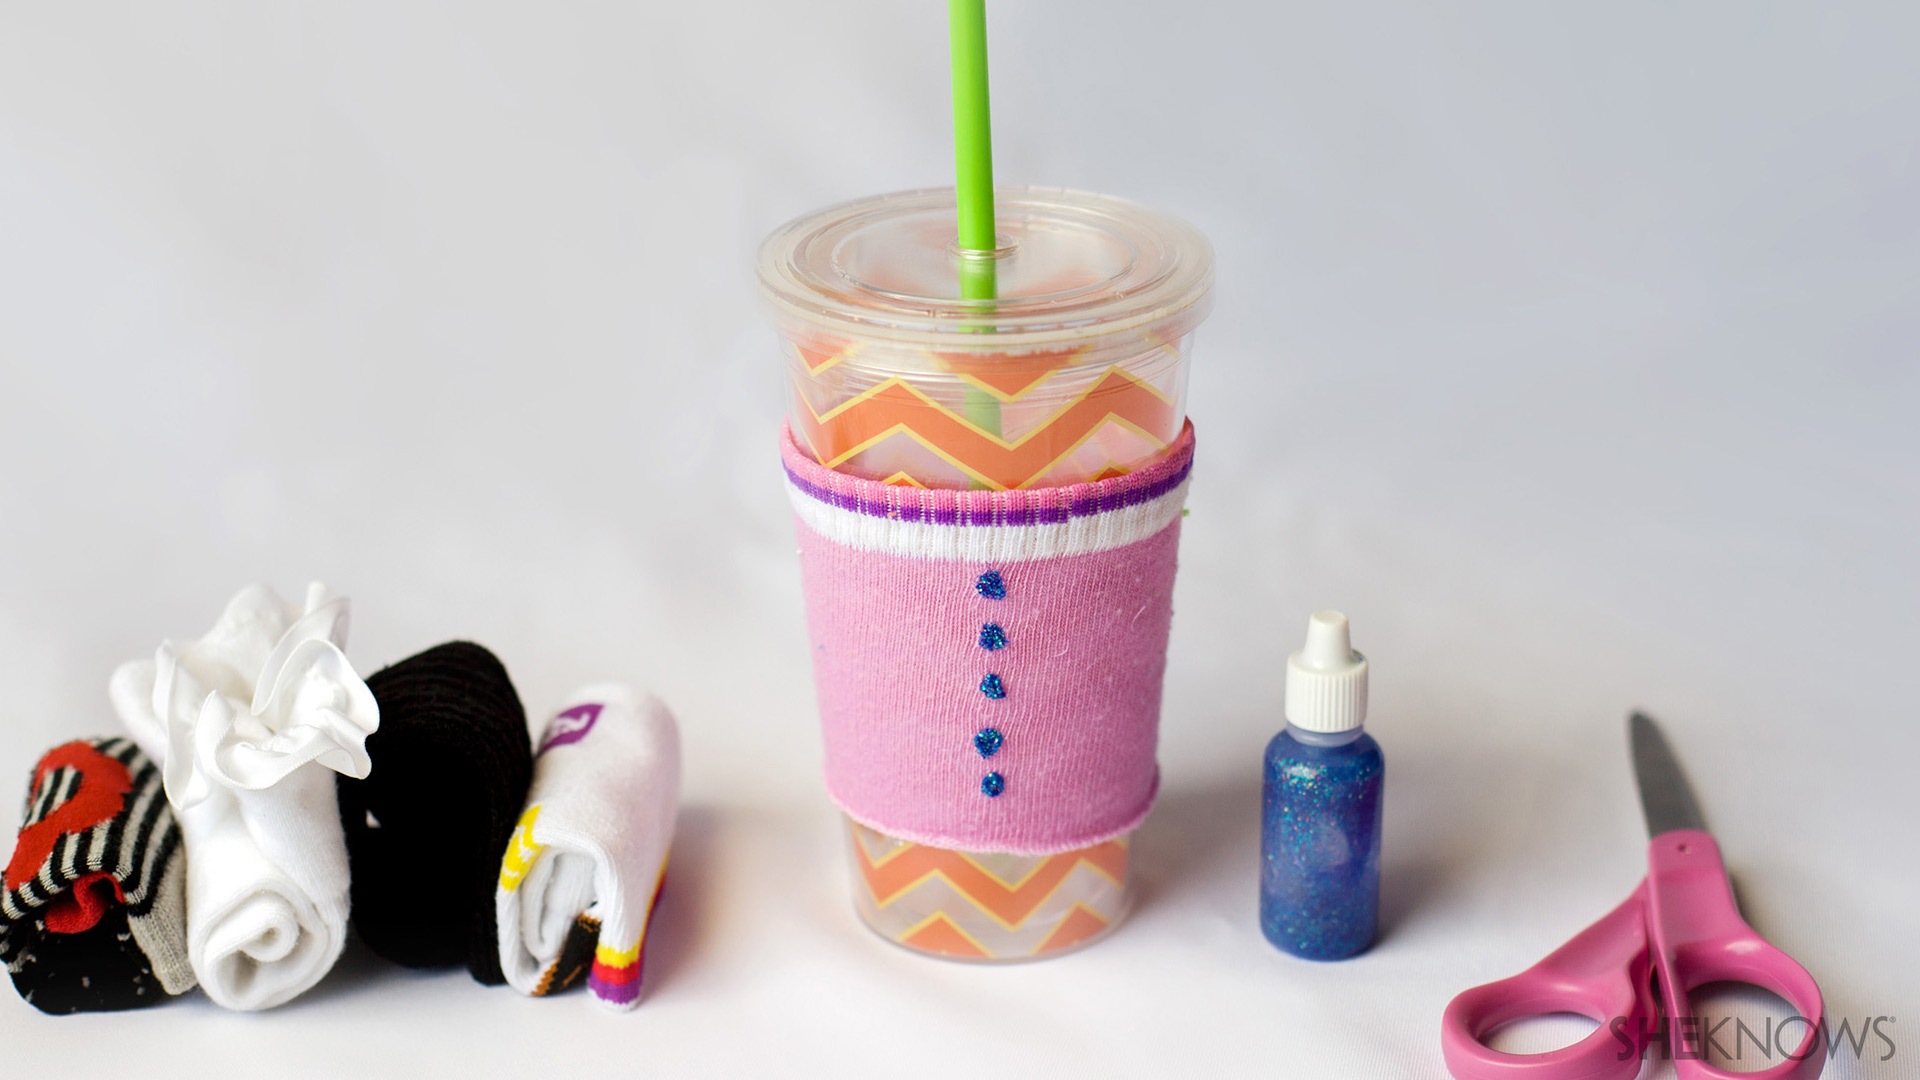 These easy summer projects for kids don't require any sewing